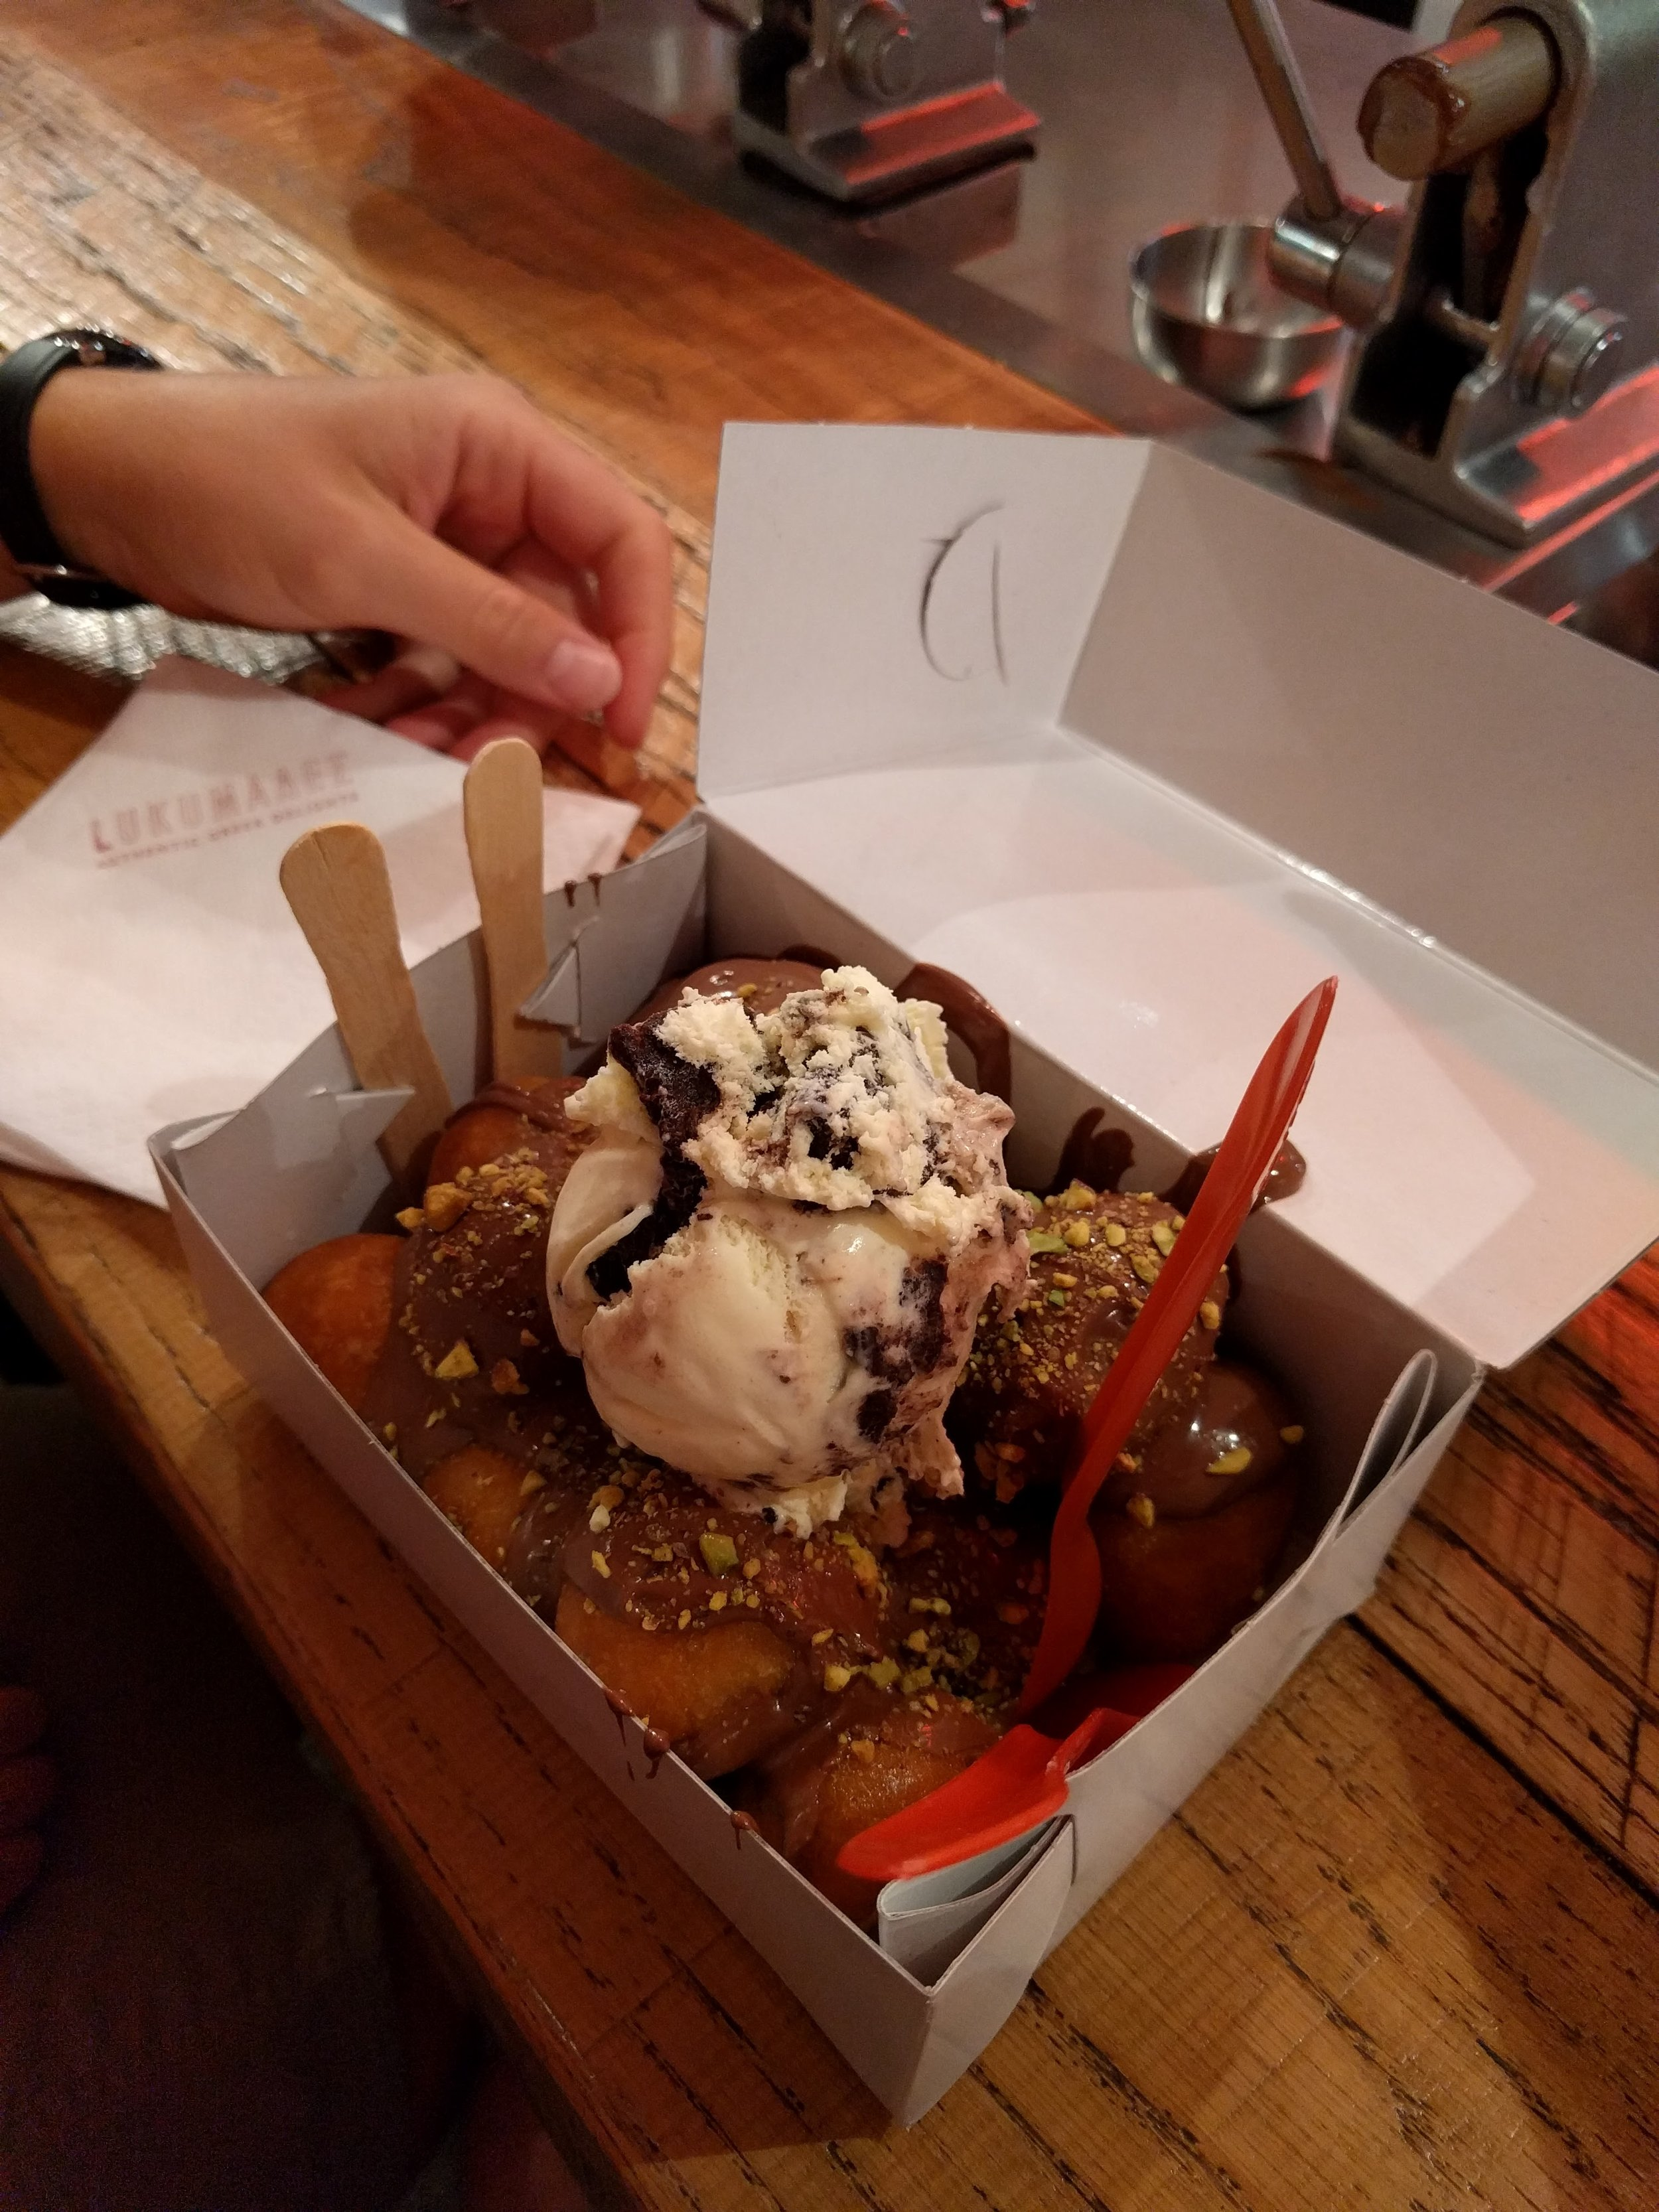 Lukumades in Athens - donut balls with chocolate sauce and cookies and creme ice cream.